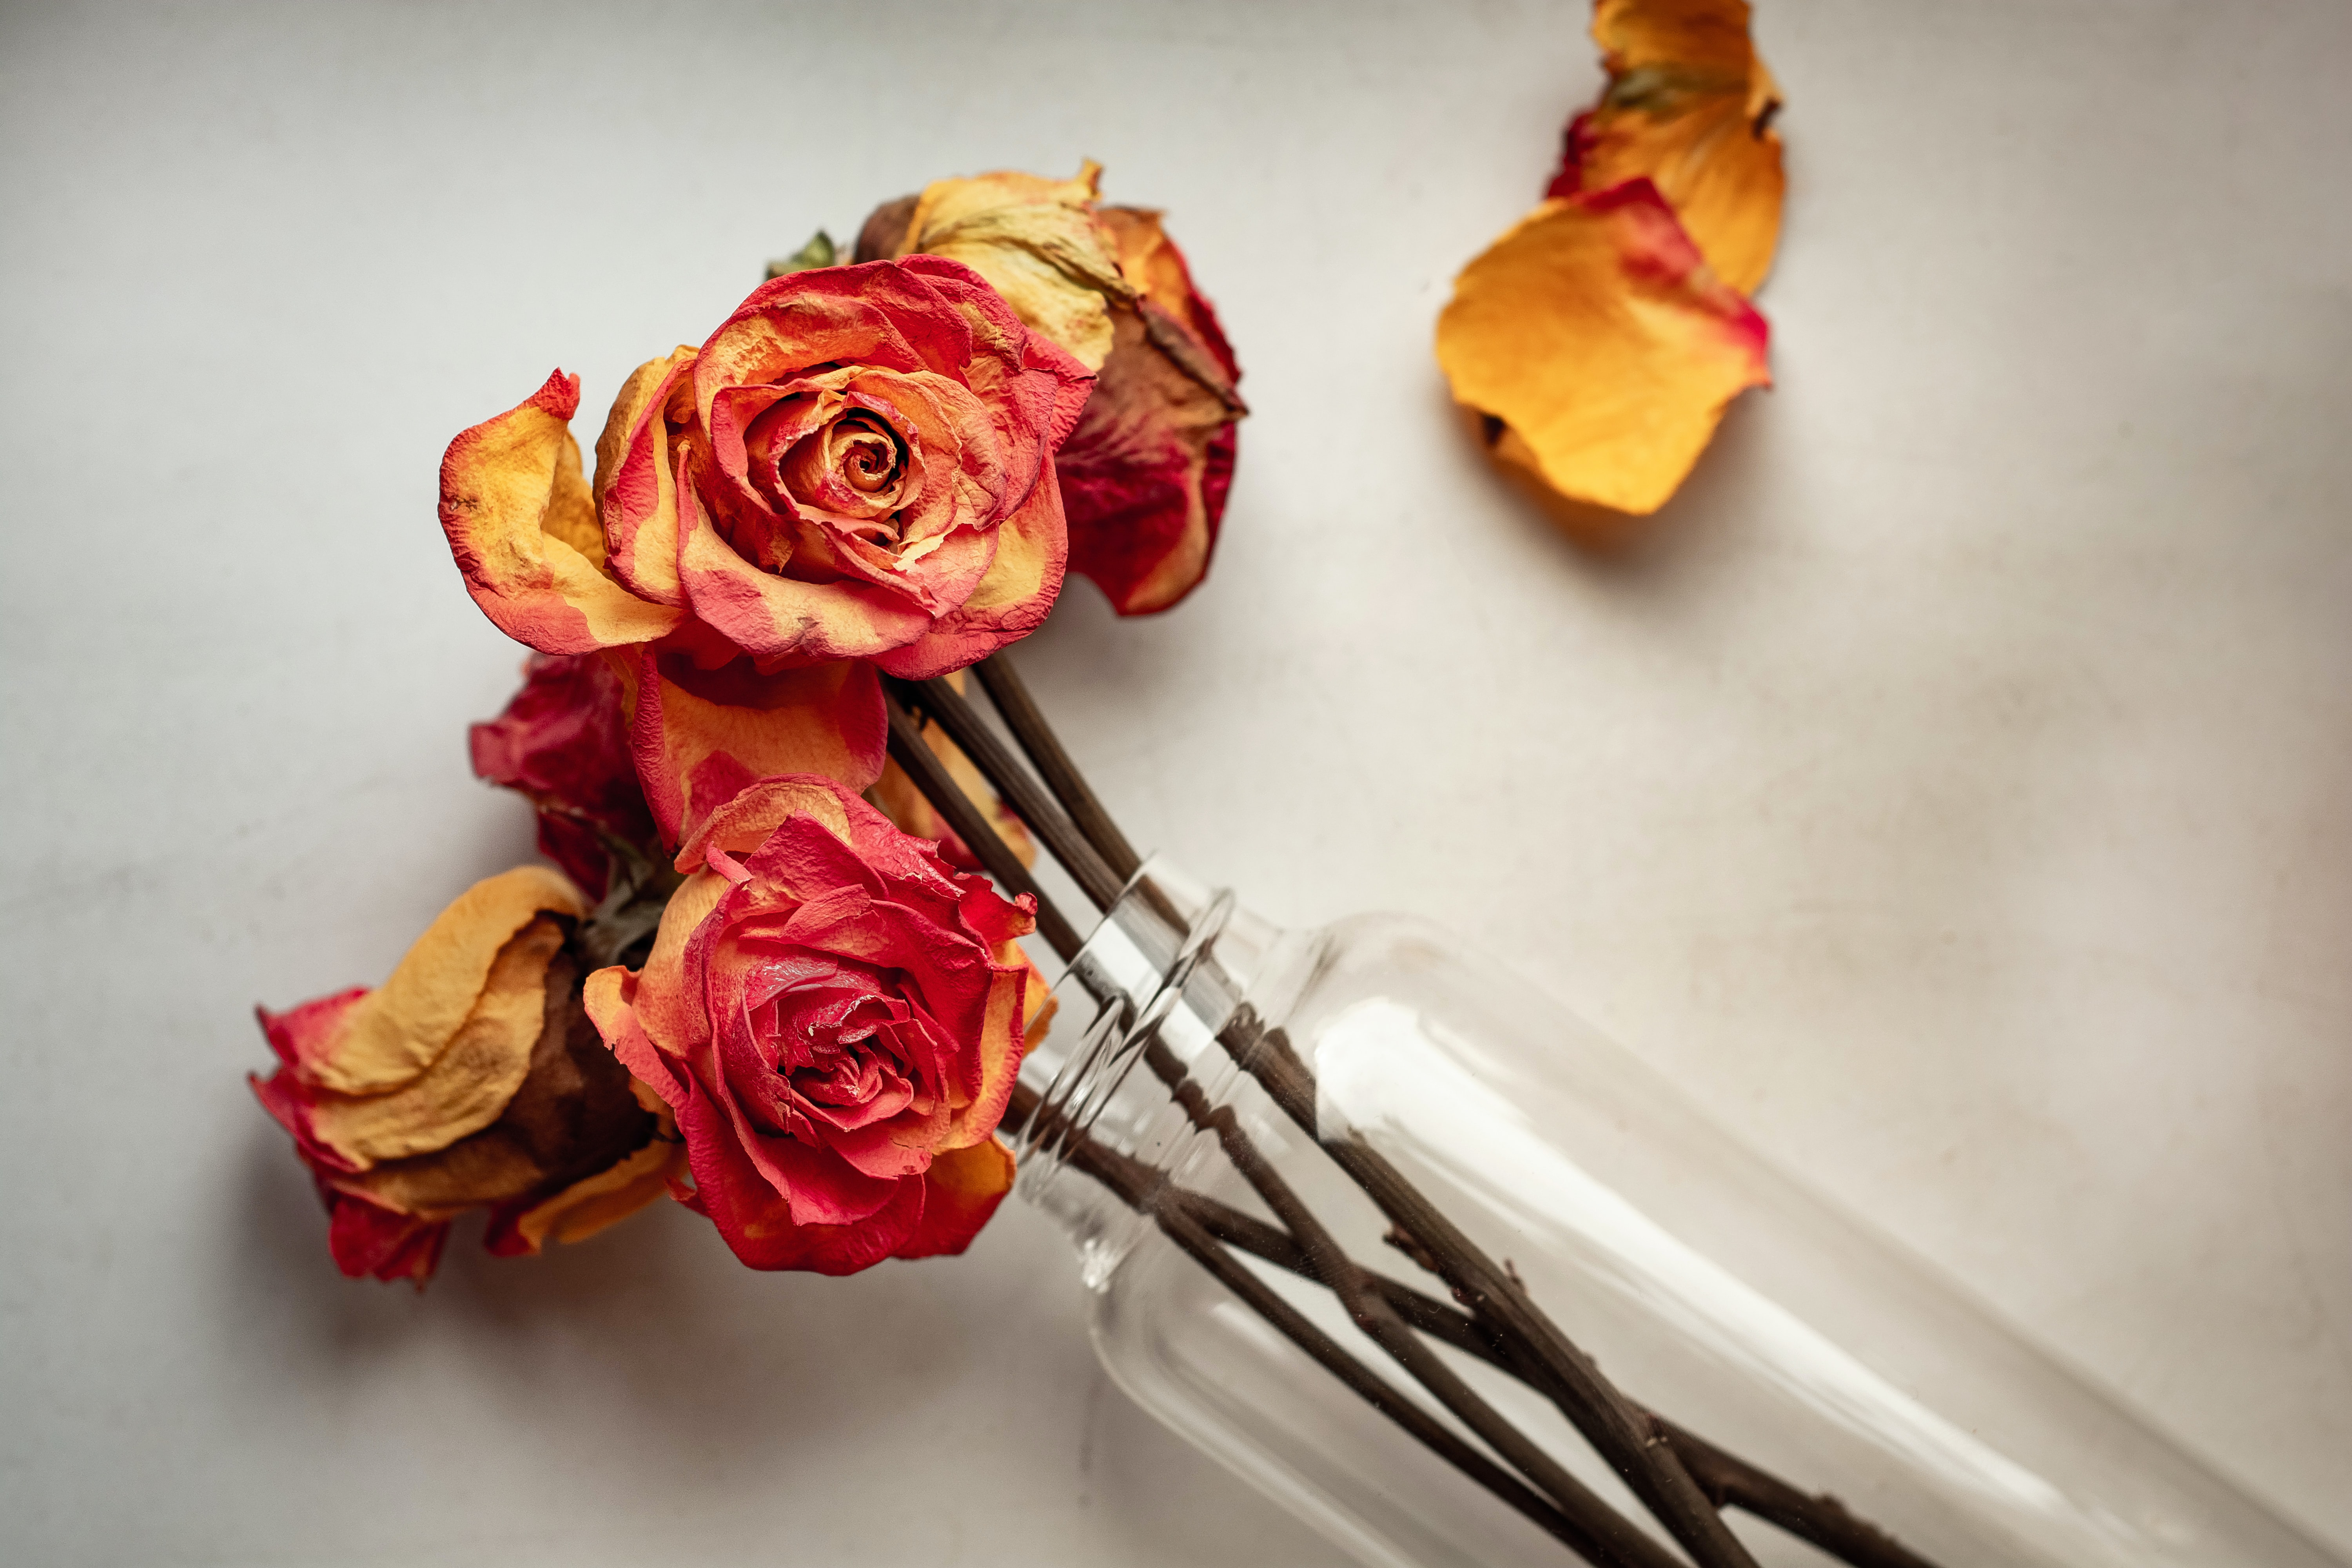 drying red rose flower in vase on white surface